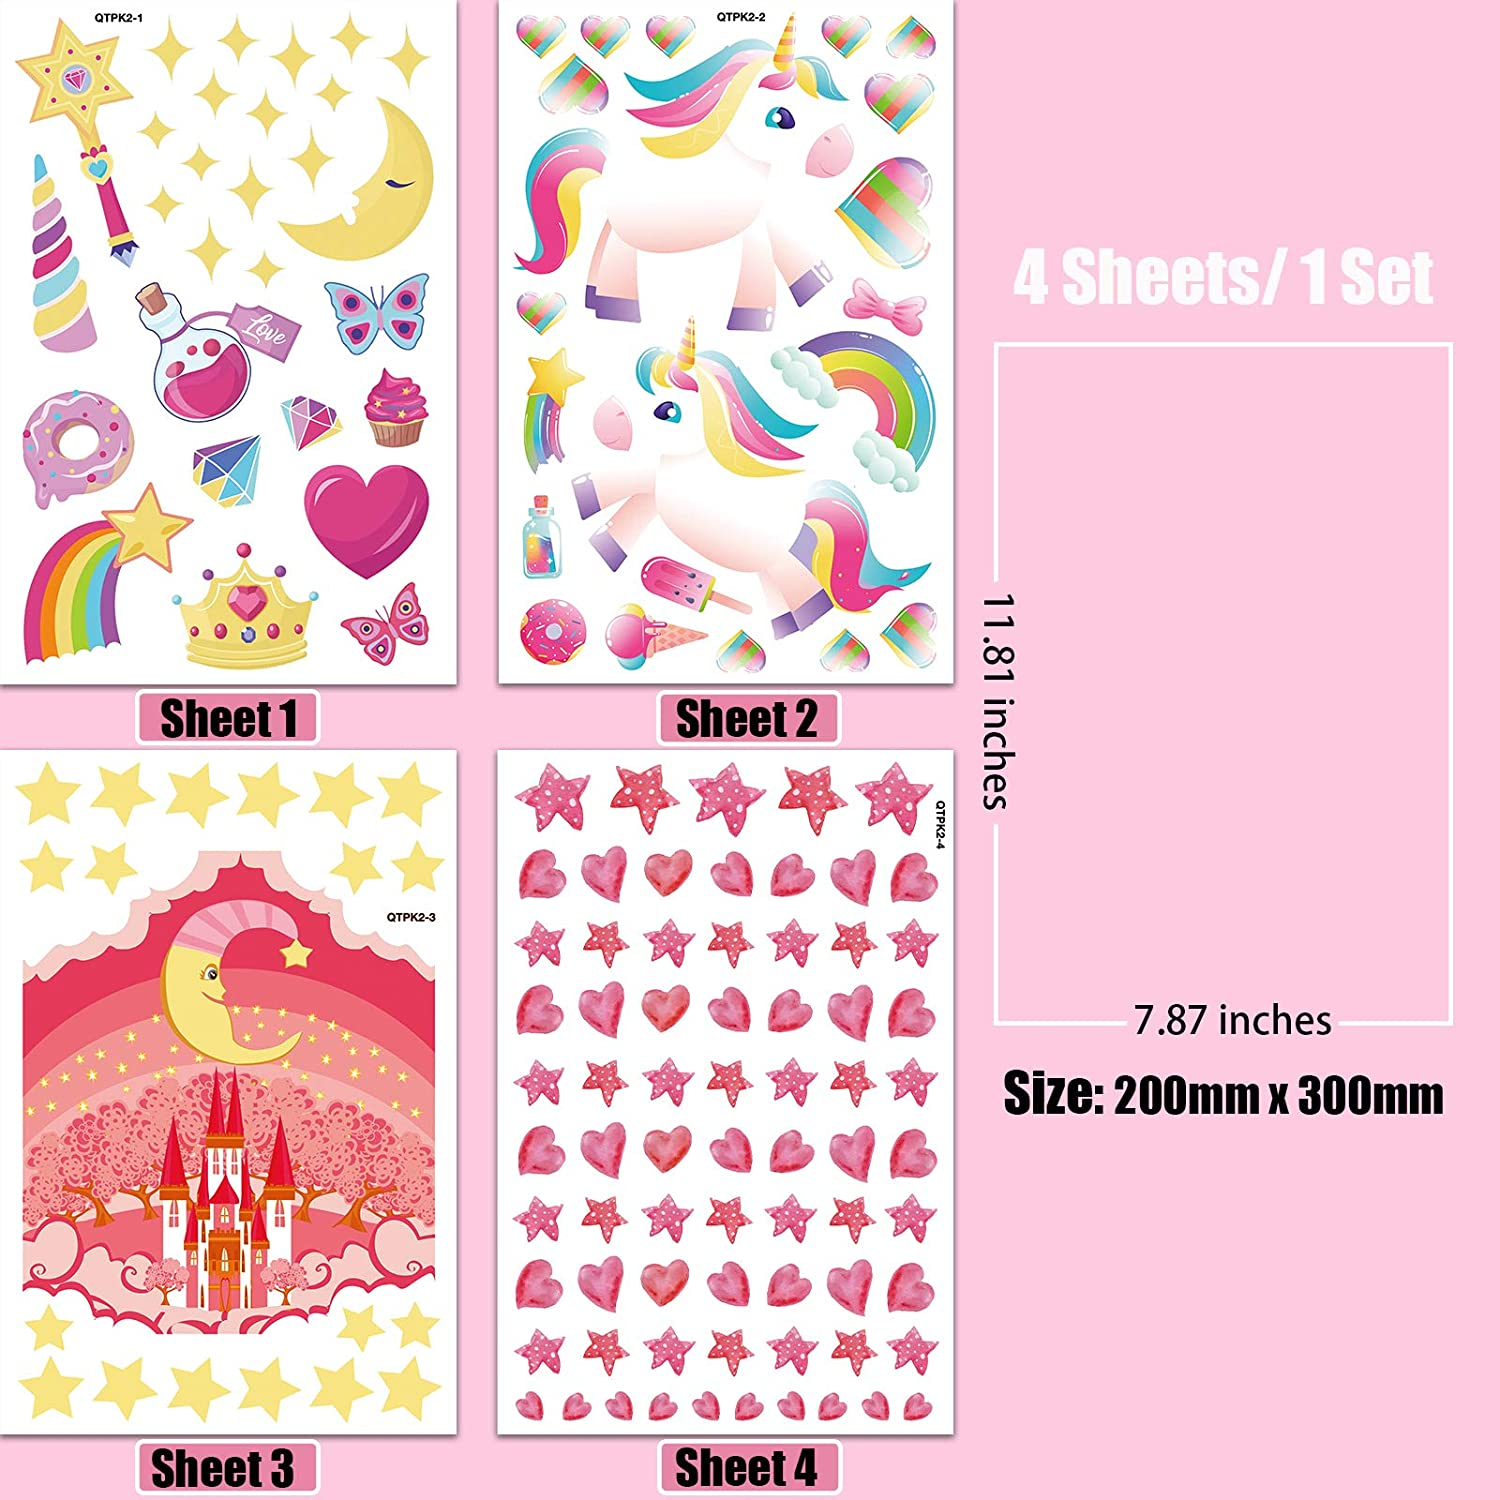 Wall Stickers for Bedroom Girls Fairy Wall Decals with Moon Castle Butterfly Rainbow Star Birthday Party Gift for Kids Glow in The Dark Stickers for Ceiling 4 Sheets Unicorn Sticker Set